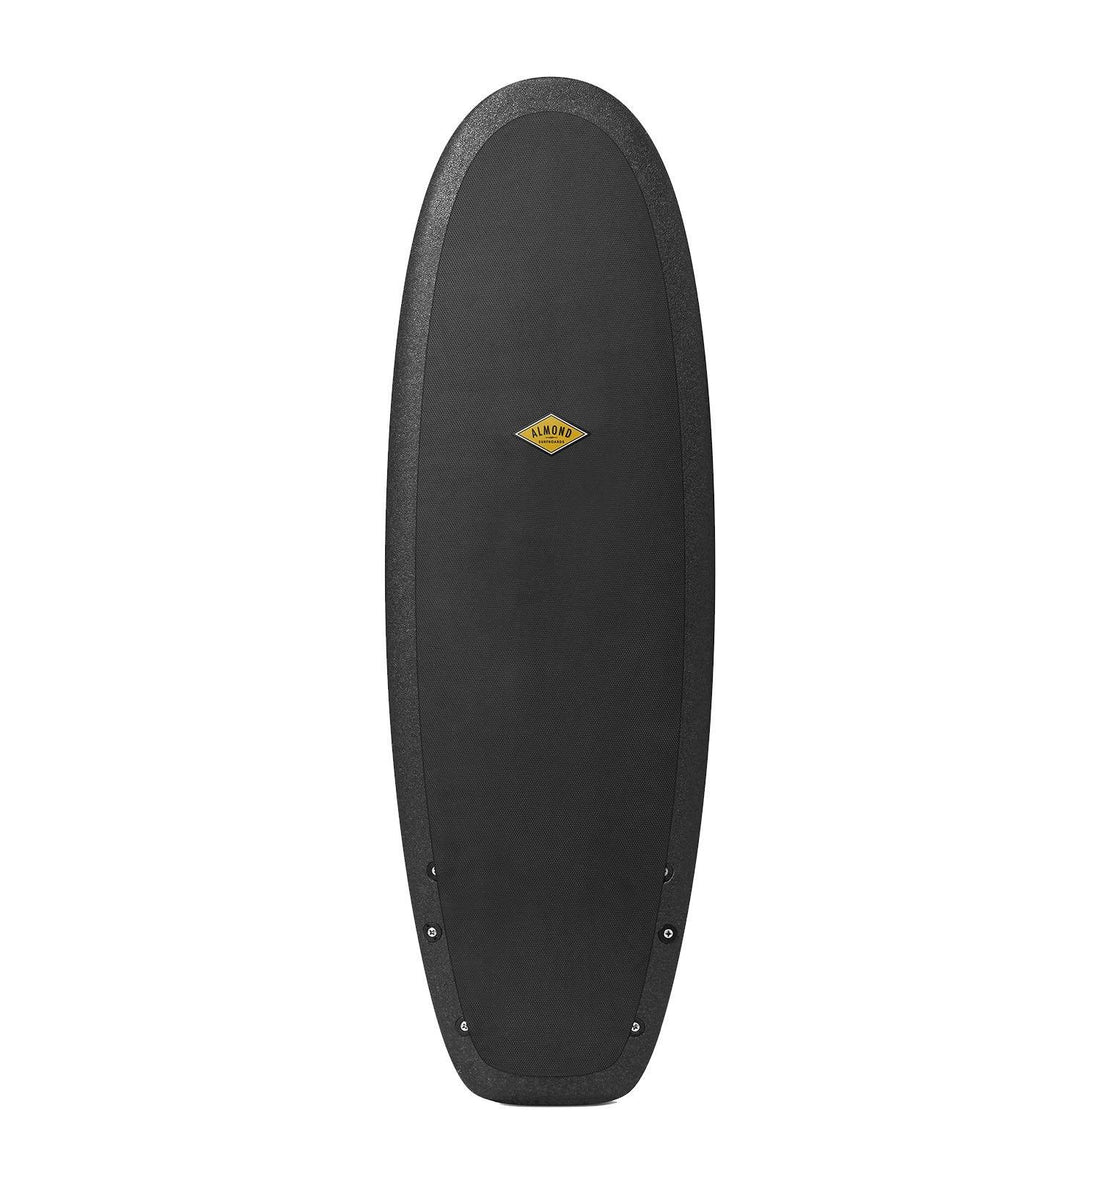 "Almond Surfboards & Design R-Series Secret Menu - Black - 5'4"" - Surf - Iron and Resin"